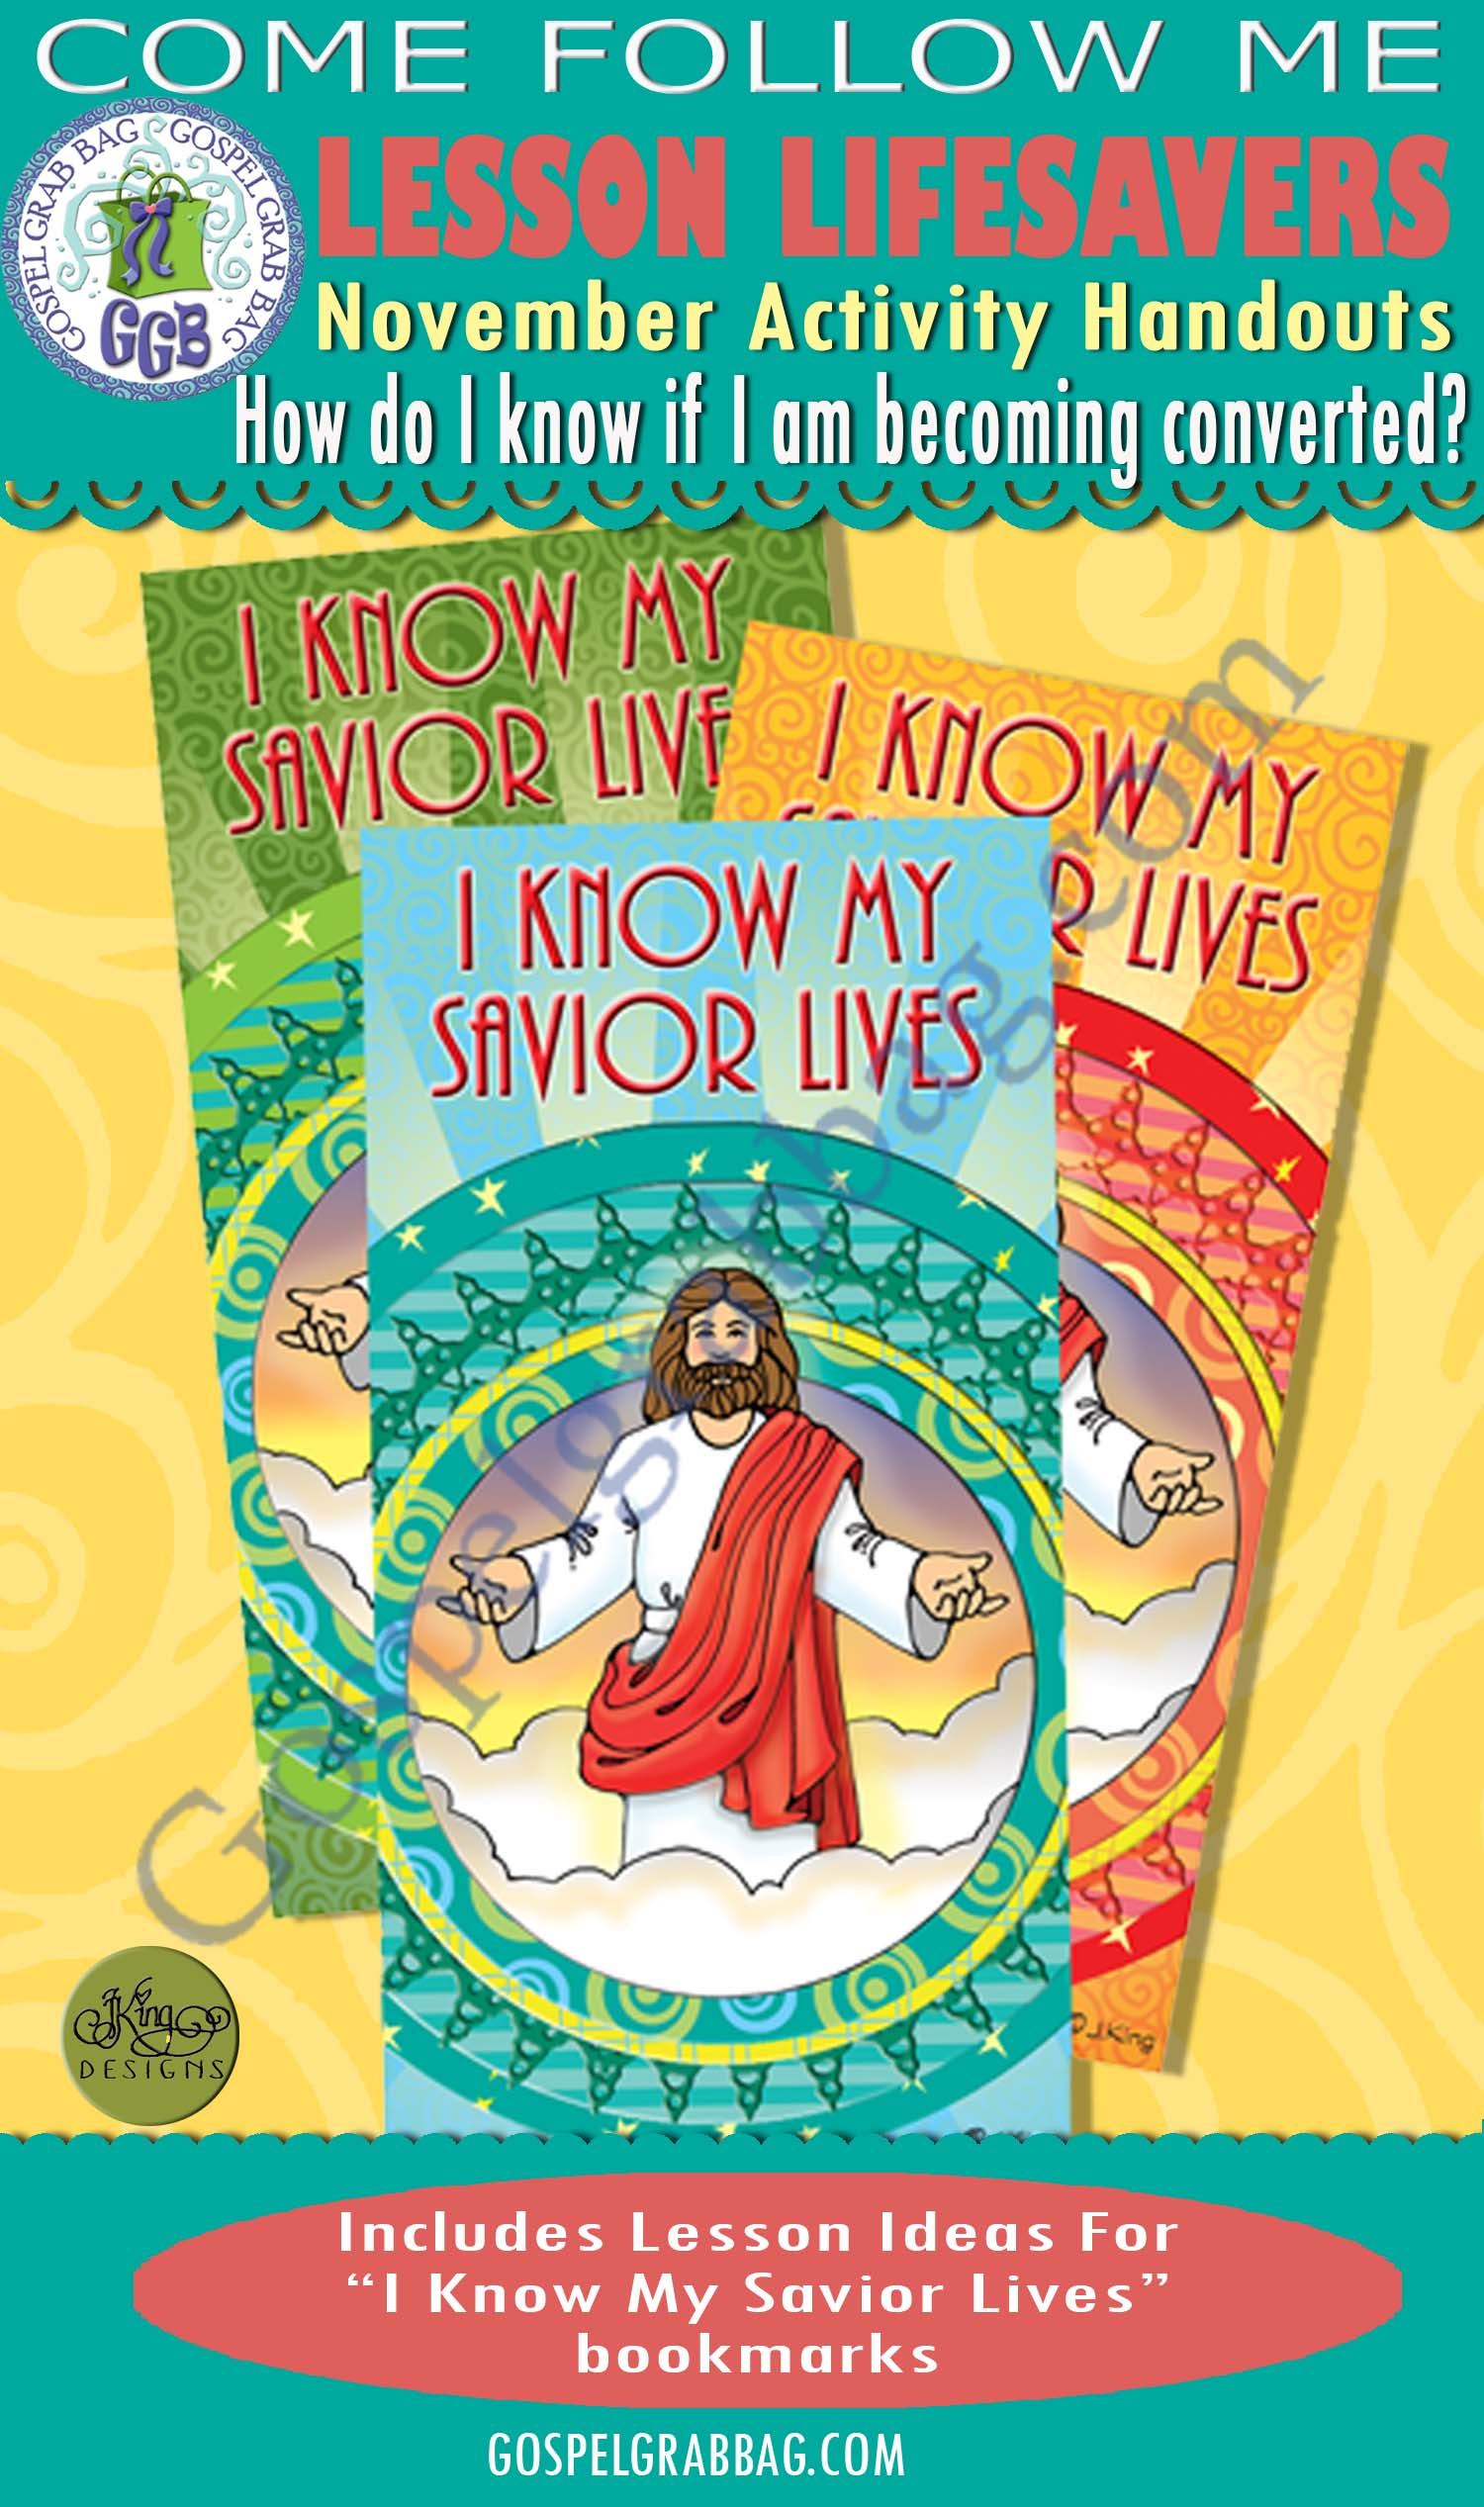 "$175 NOV. Lesson 2 - Come Follow Me ""How do I know if I am becoming converted?"" ACTIVITY - HANDOUT: I Know My Savior Lives bookmarks"